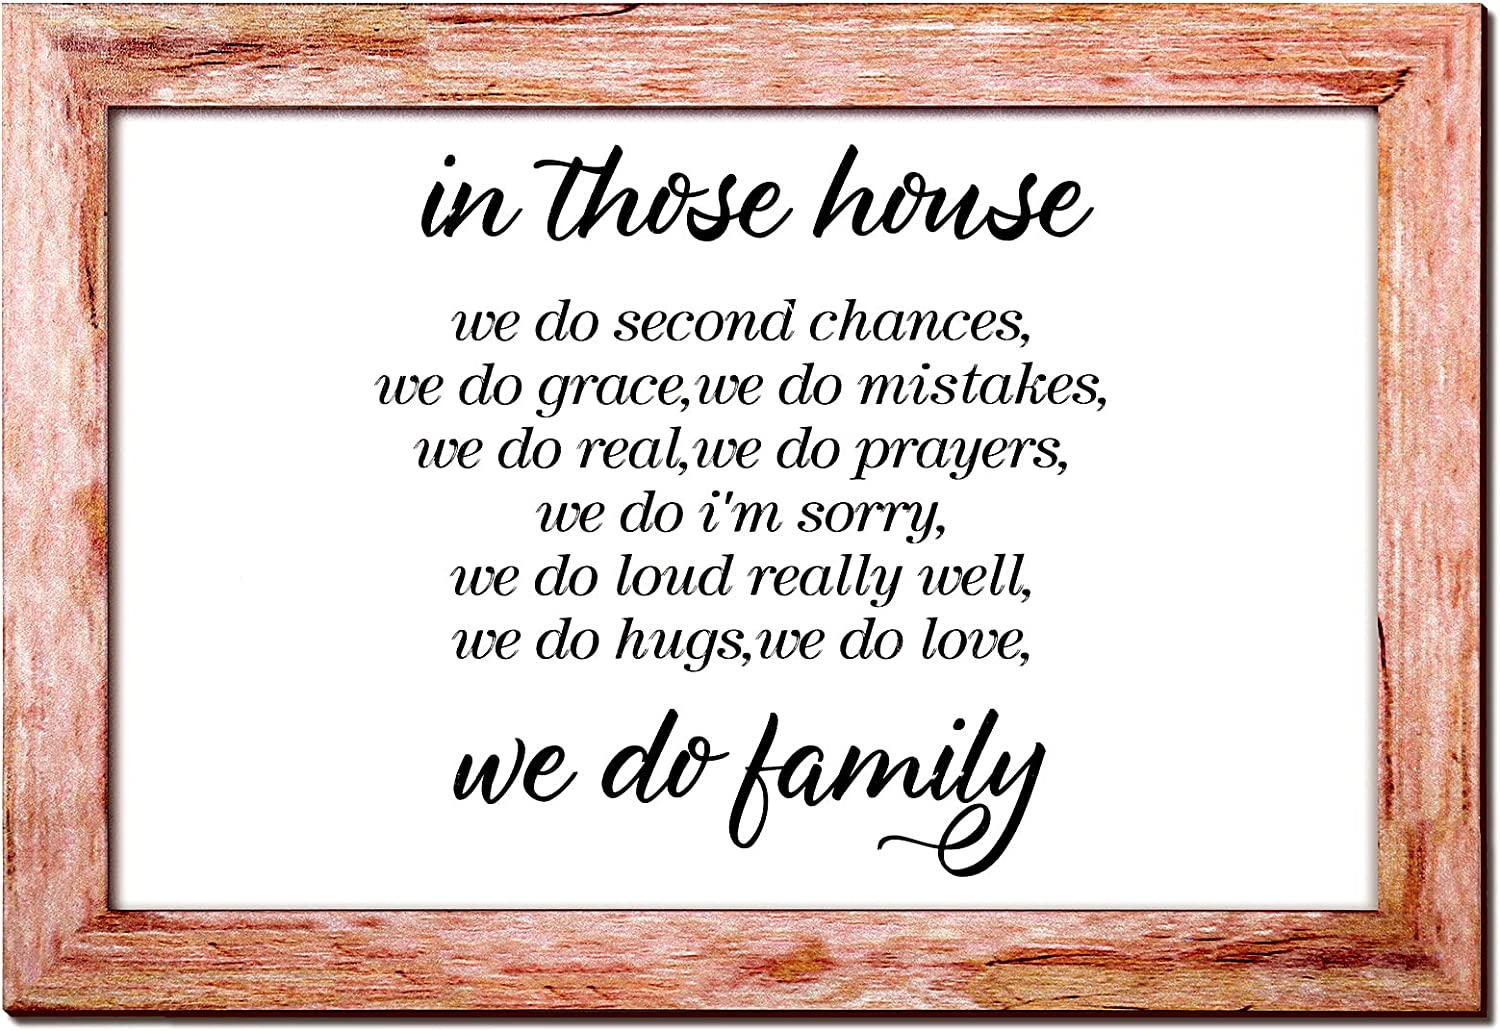 Jetec in This House We Do Family Sign Family Framed Rustic Wood Farmhouse Wall Sign Home Sign Wall Decorations Modern Farmhouse Sign with Solid Wood Frame for Living Room, 14 x 9.6 Inch